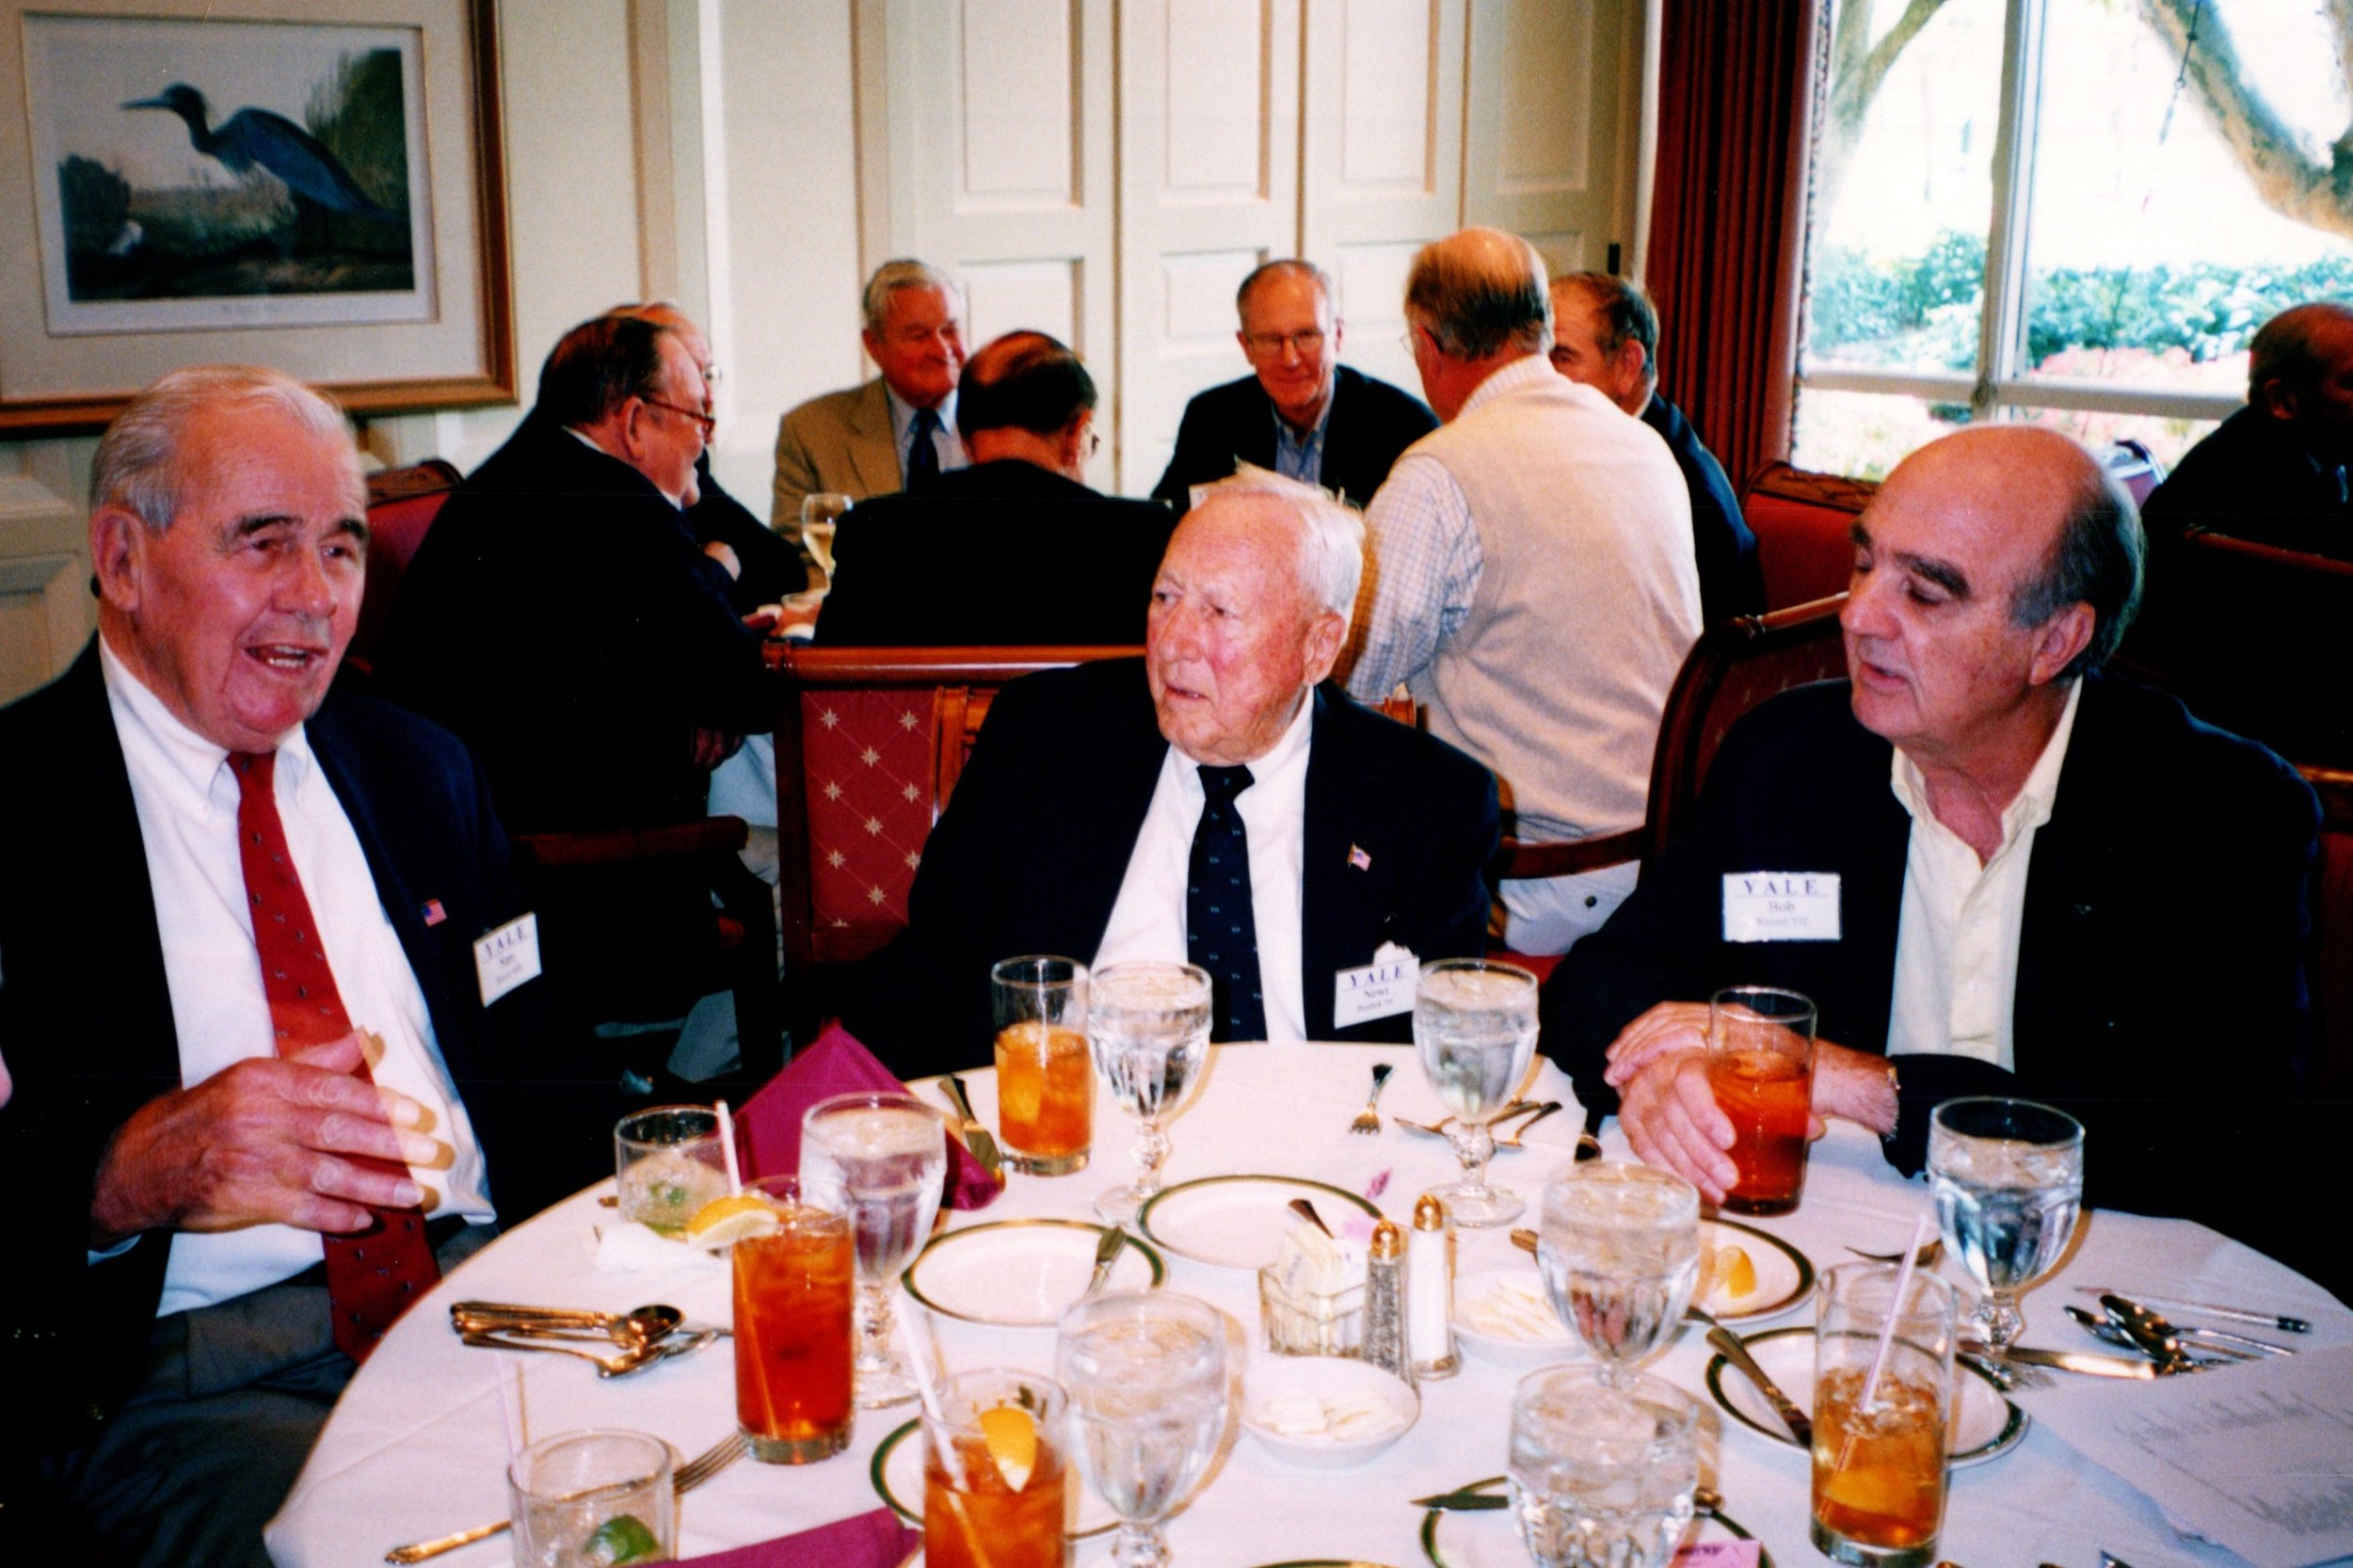 3_11_2004 - COACH SIEDLECKI LUNCHEON - ROYAL POINCIANA C.C. 4.jpg